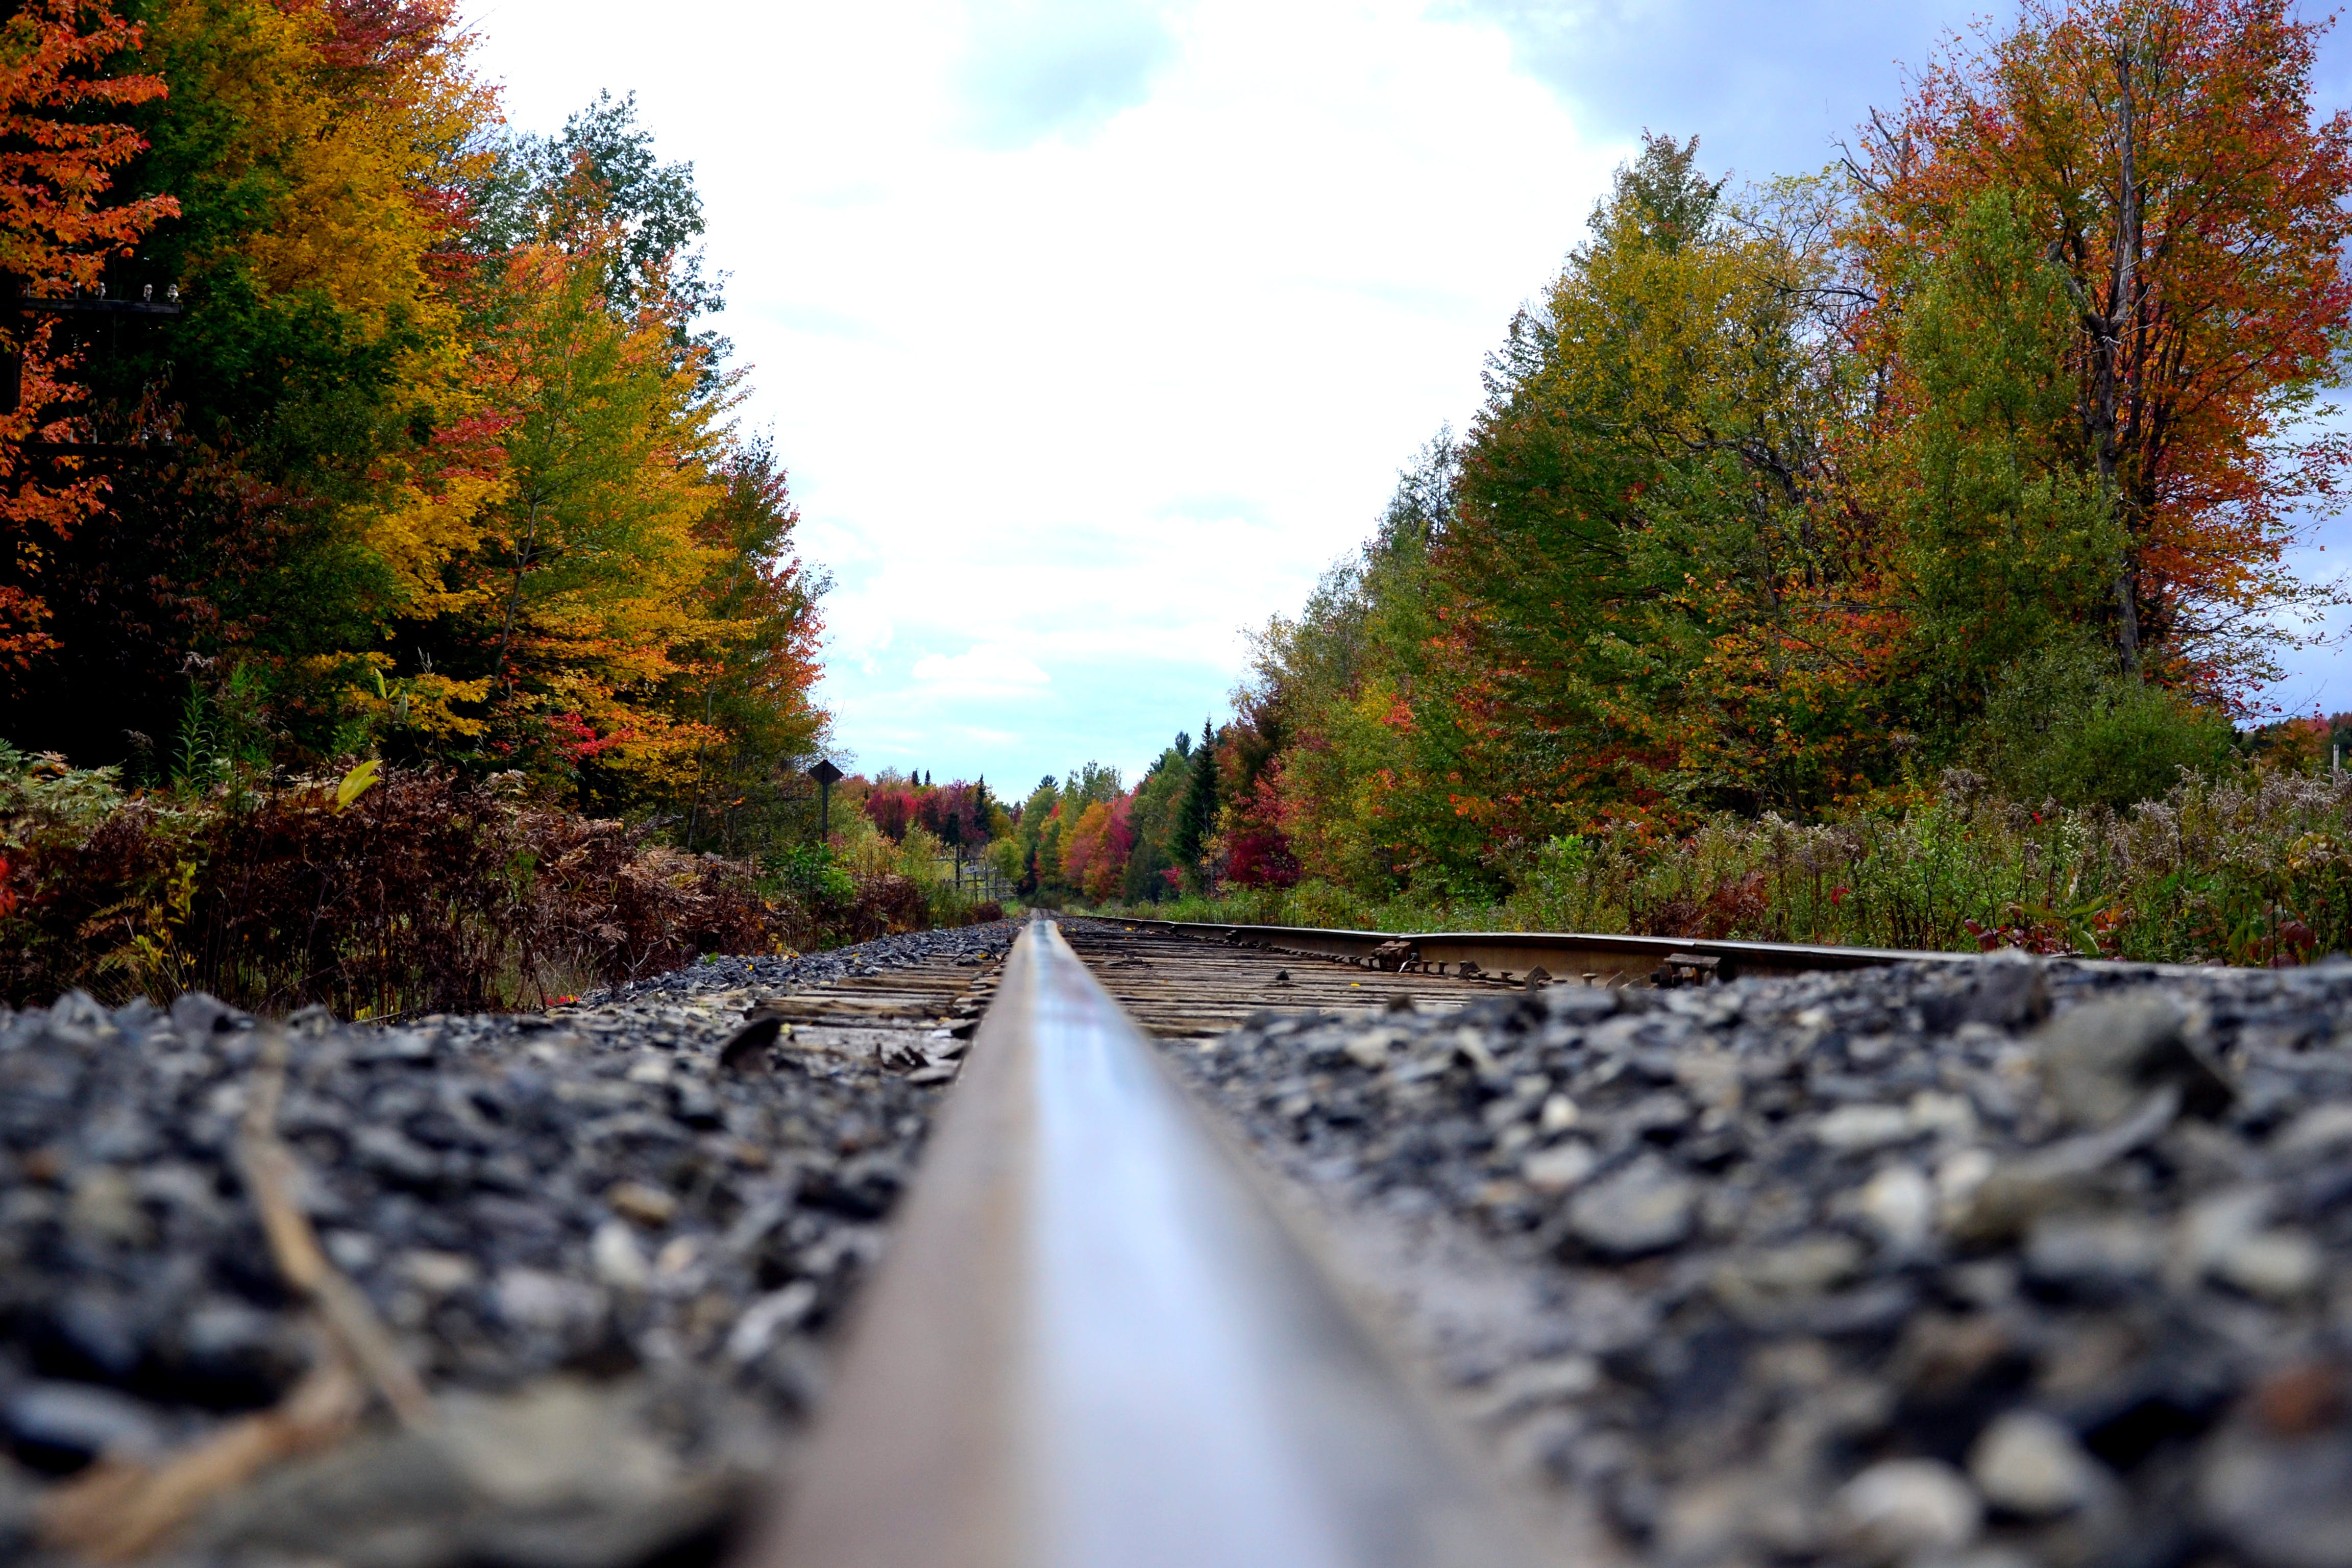 Black Steel Train Rail With Pebbles and Trees